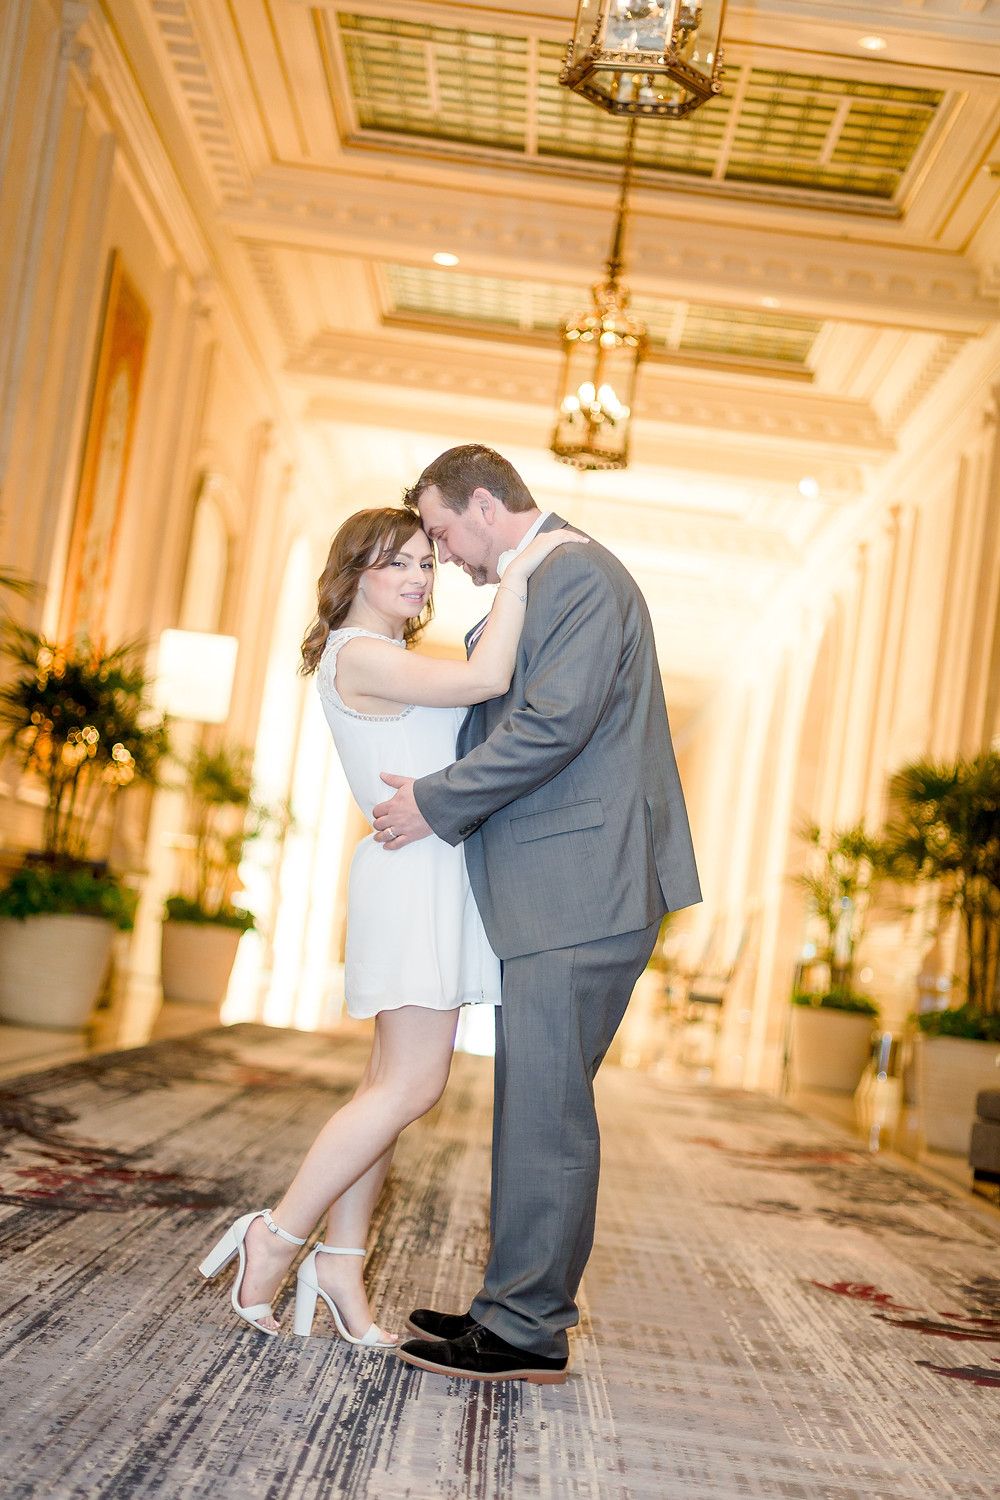 San Francisco City Hall Wedding | Photography by Vee